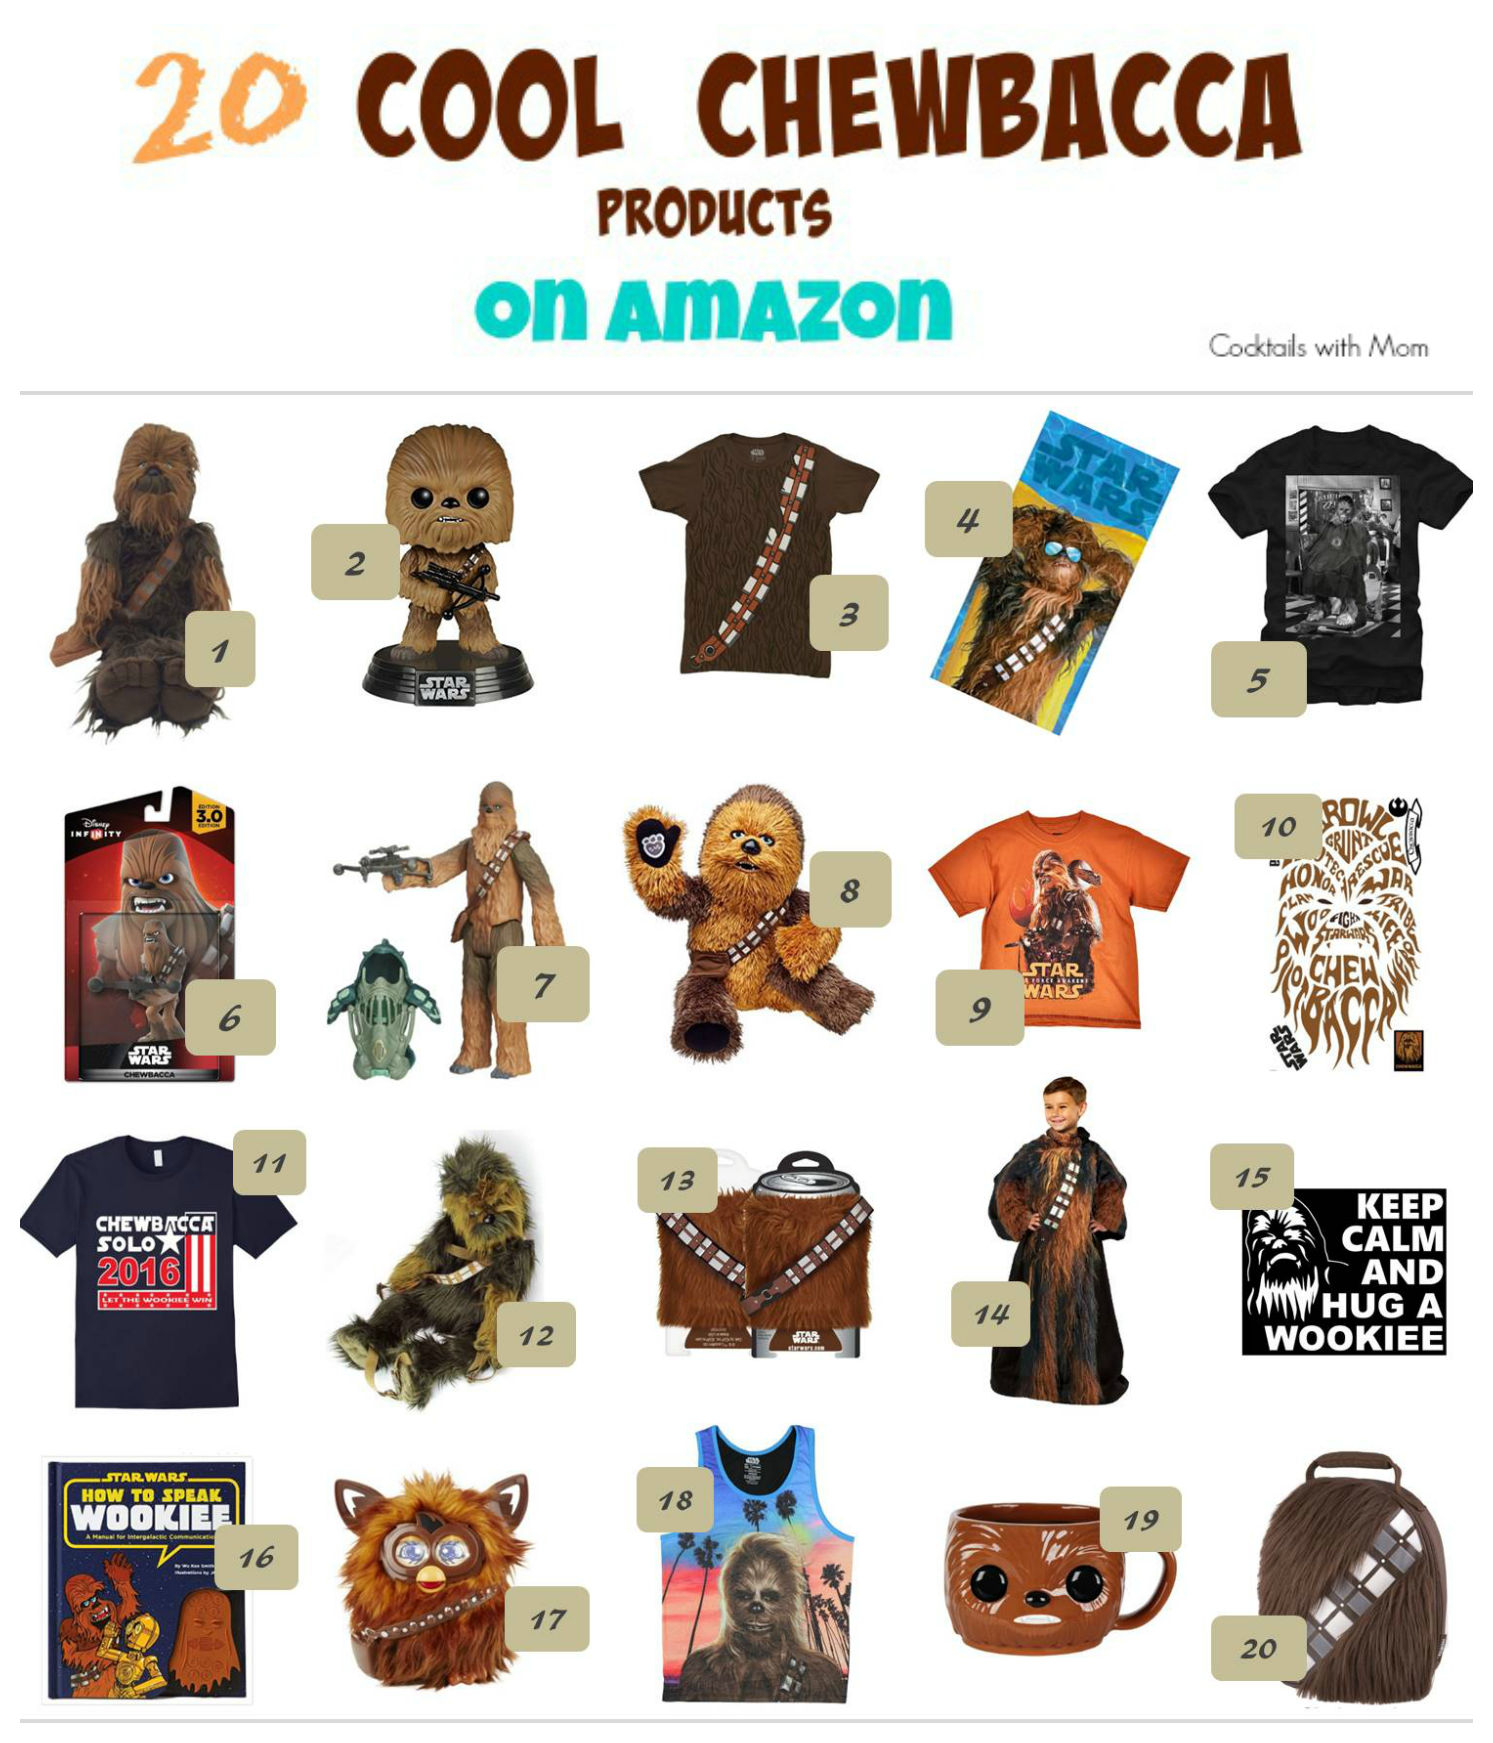 20 Really Cool Chewbacca Products on Amazon